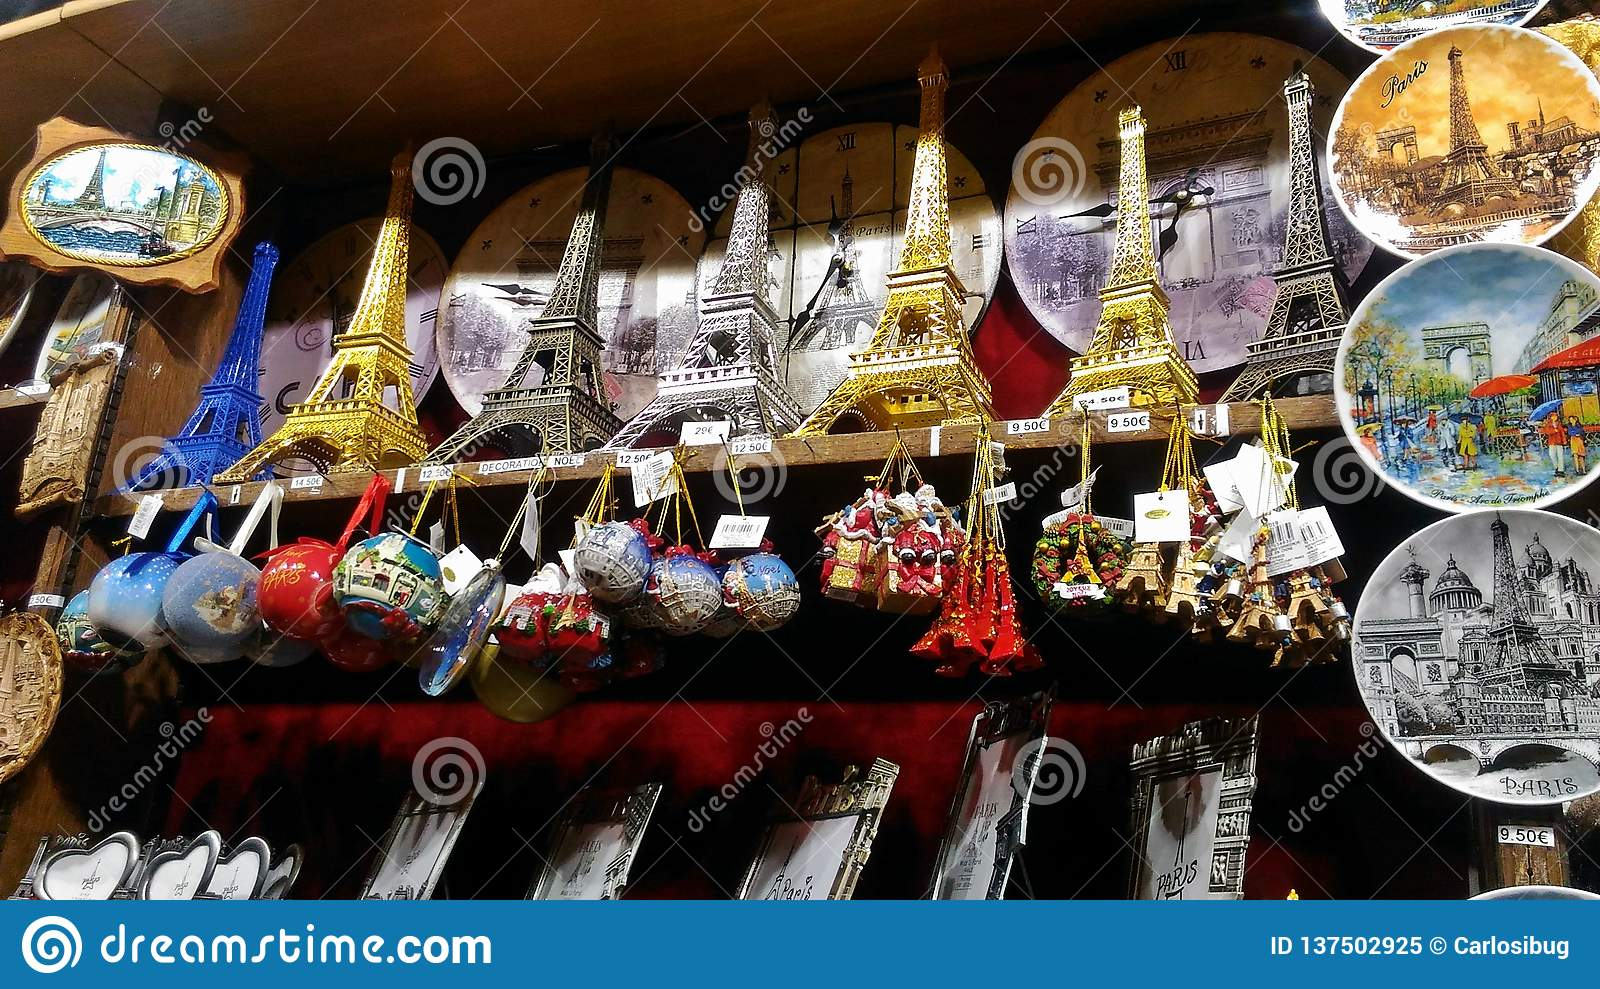 Eiffel Tower Souvenirs of different styles.